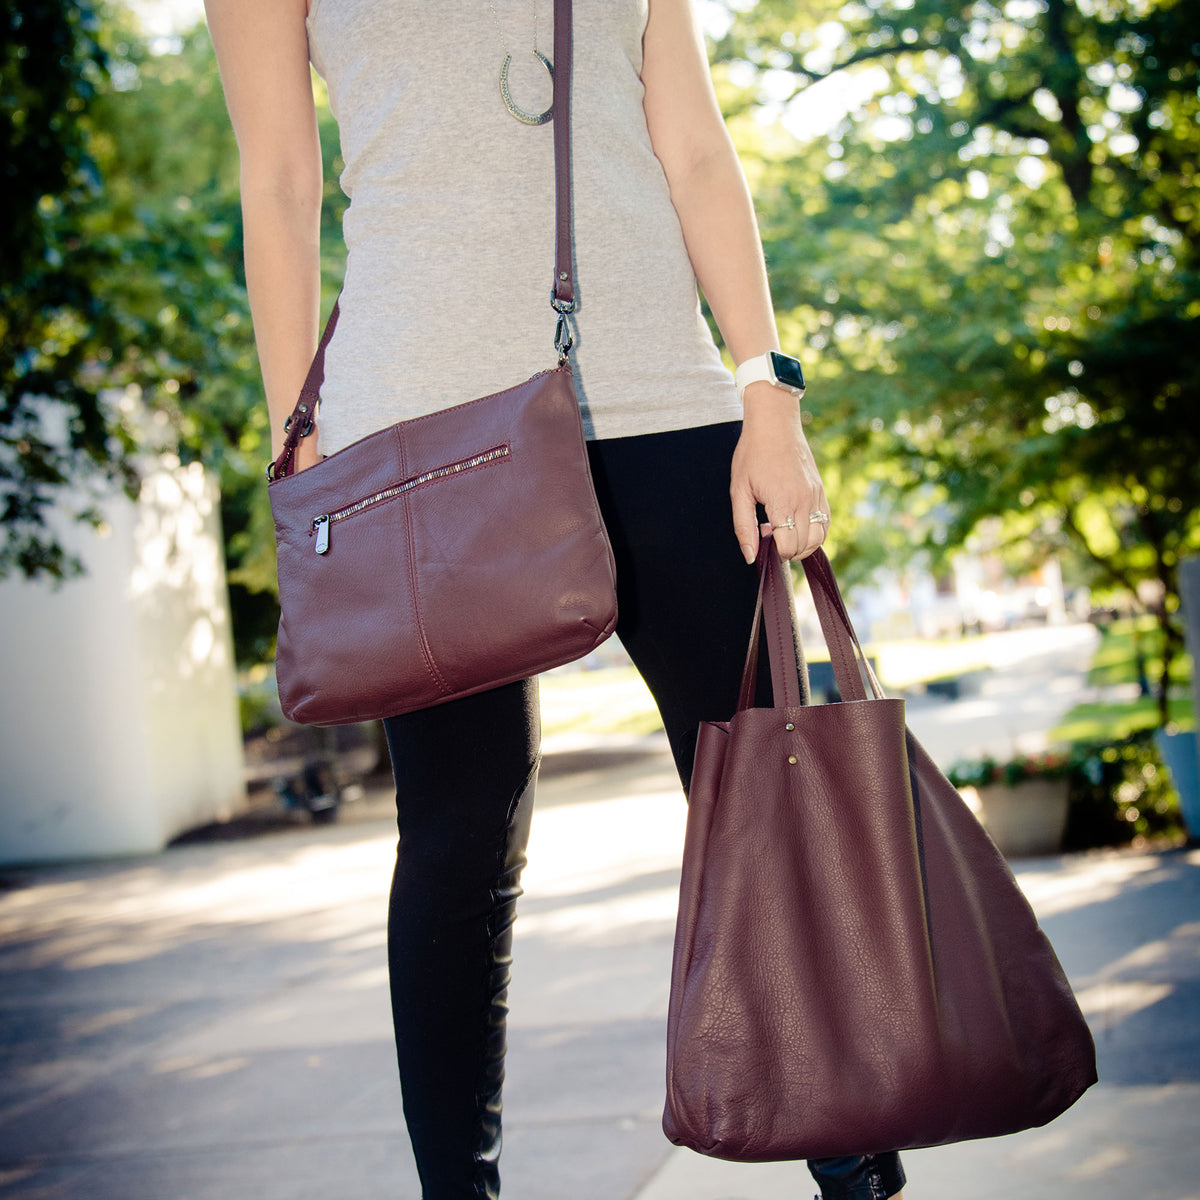 2 in 1 Tote and Shoulder Bag